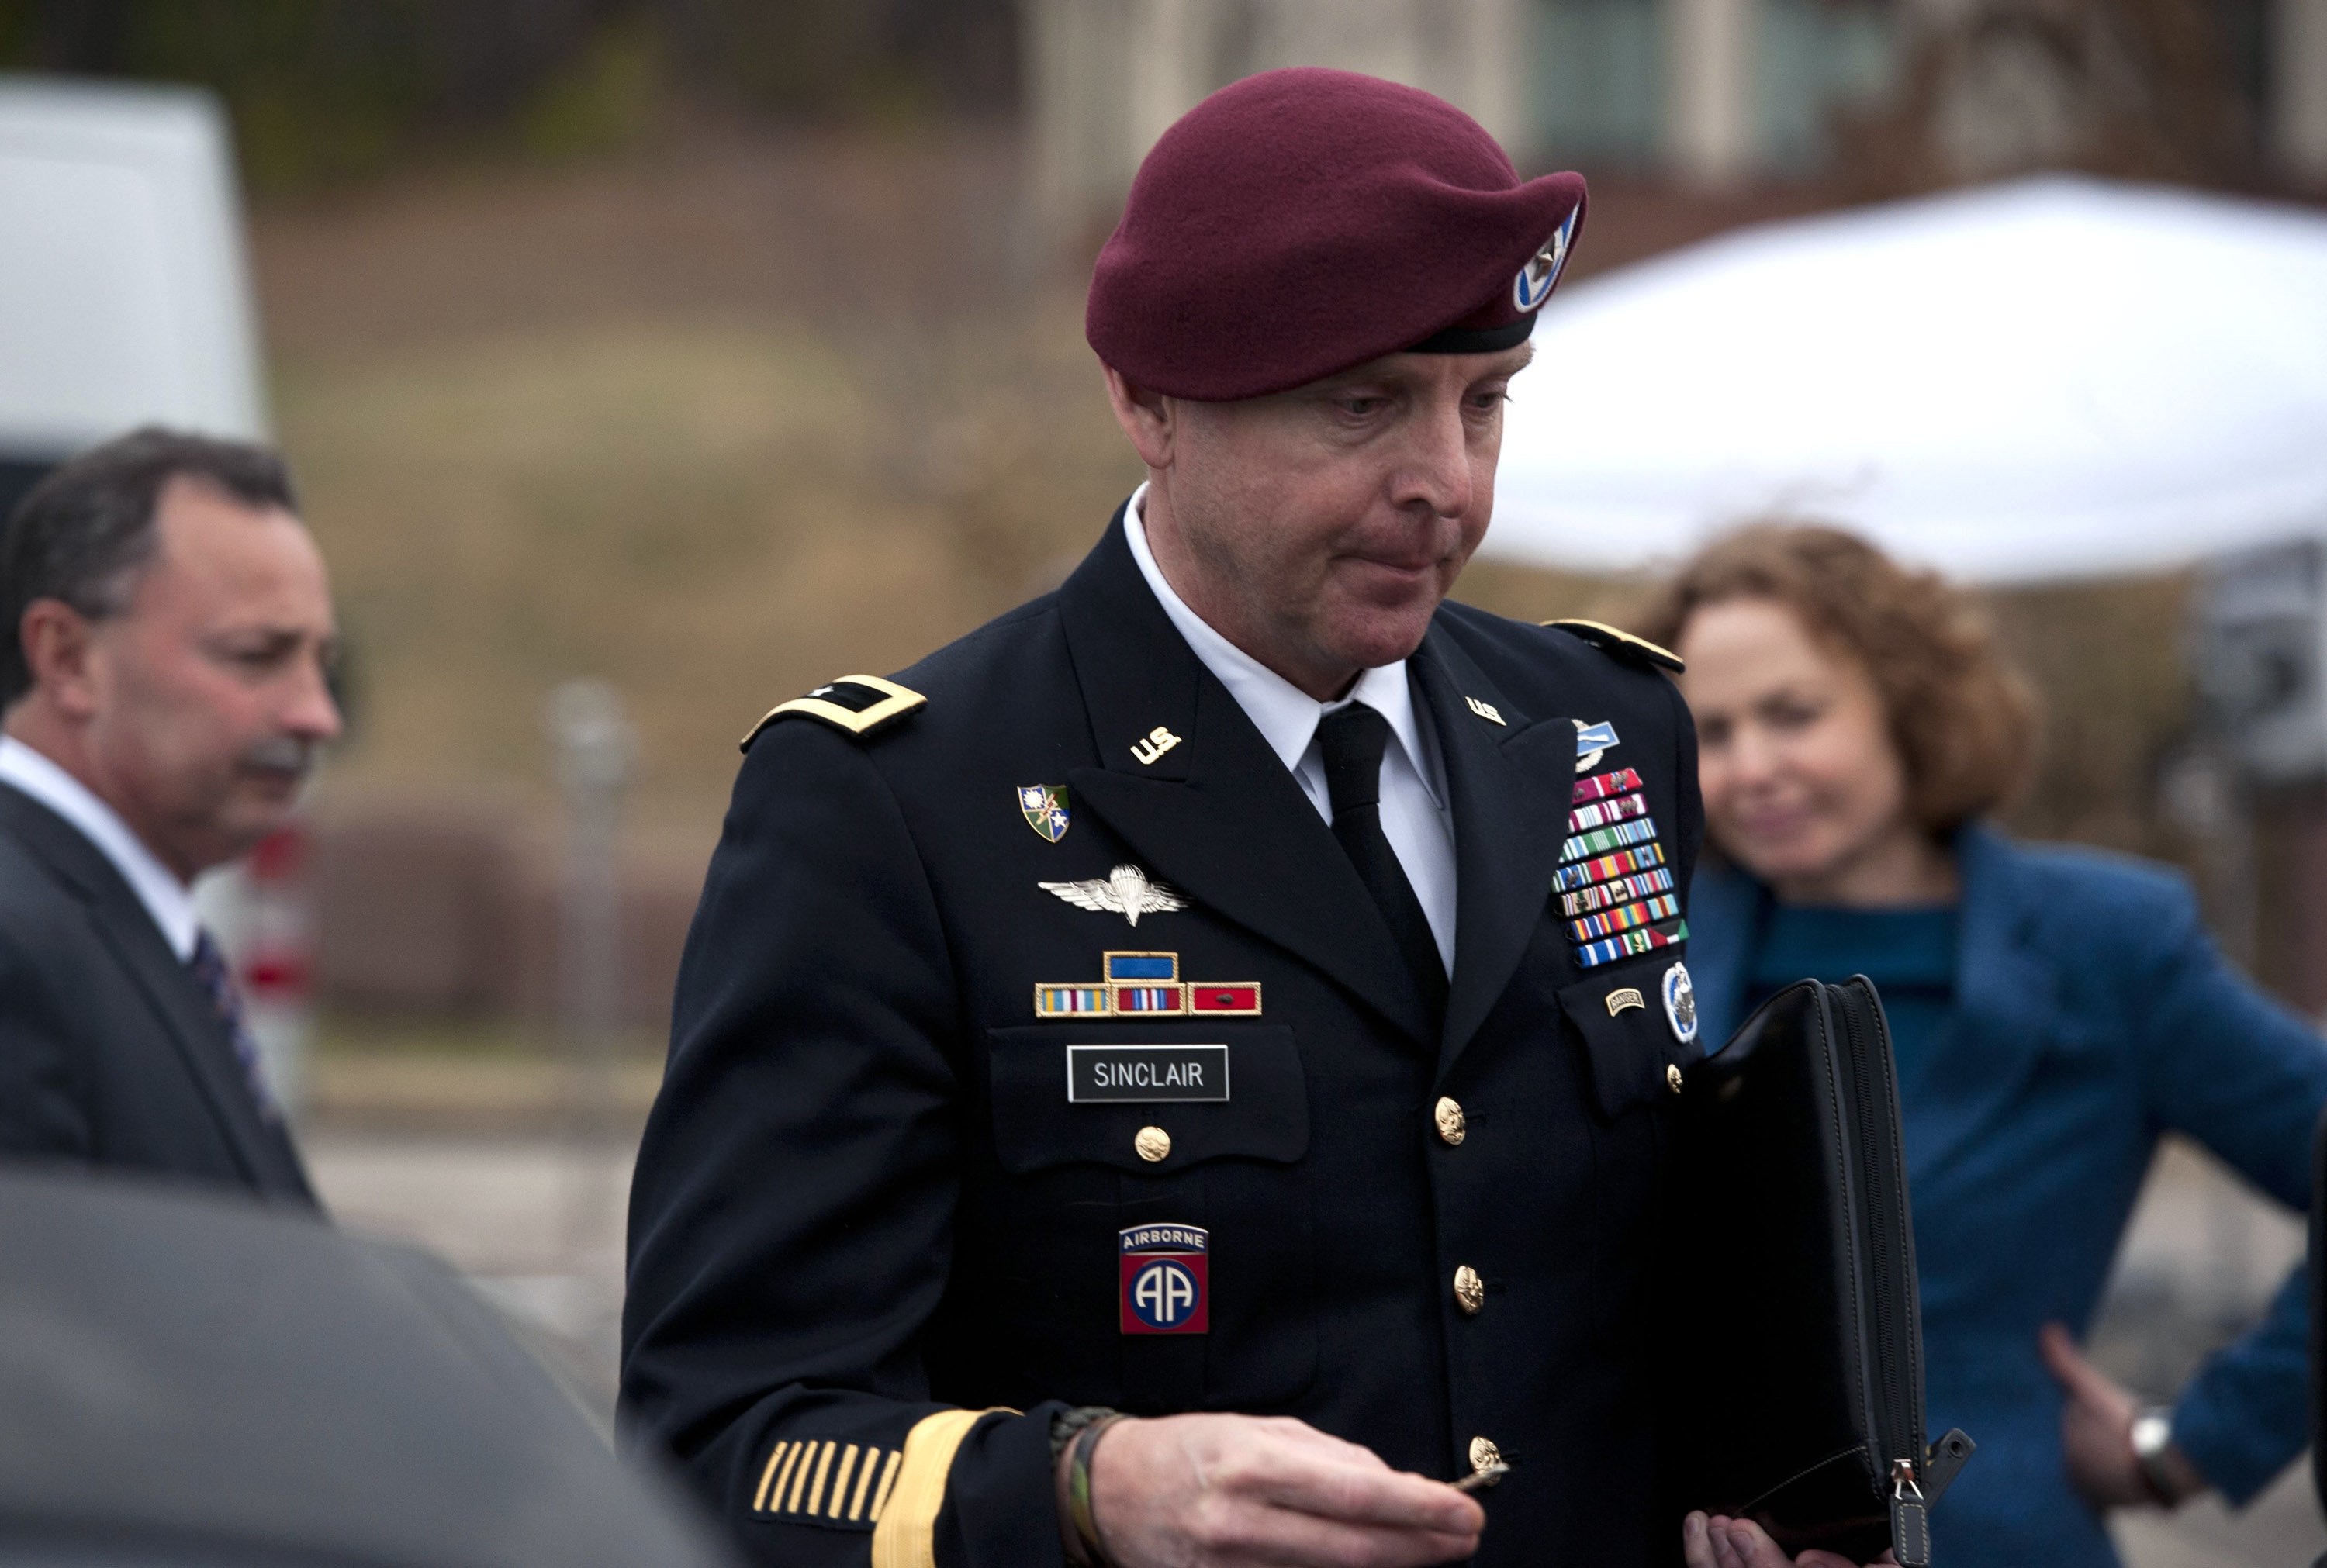 Brig. Gen. Jeffrey Sinclair leaves the Fort Bragg, N.C., Courthouse on Monday after sexual assault charges against him were dropped when he pleaded guilty to lesser charges.